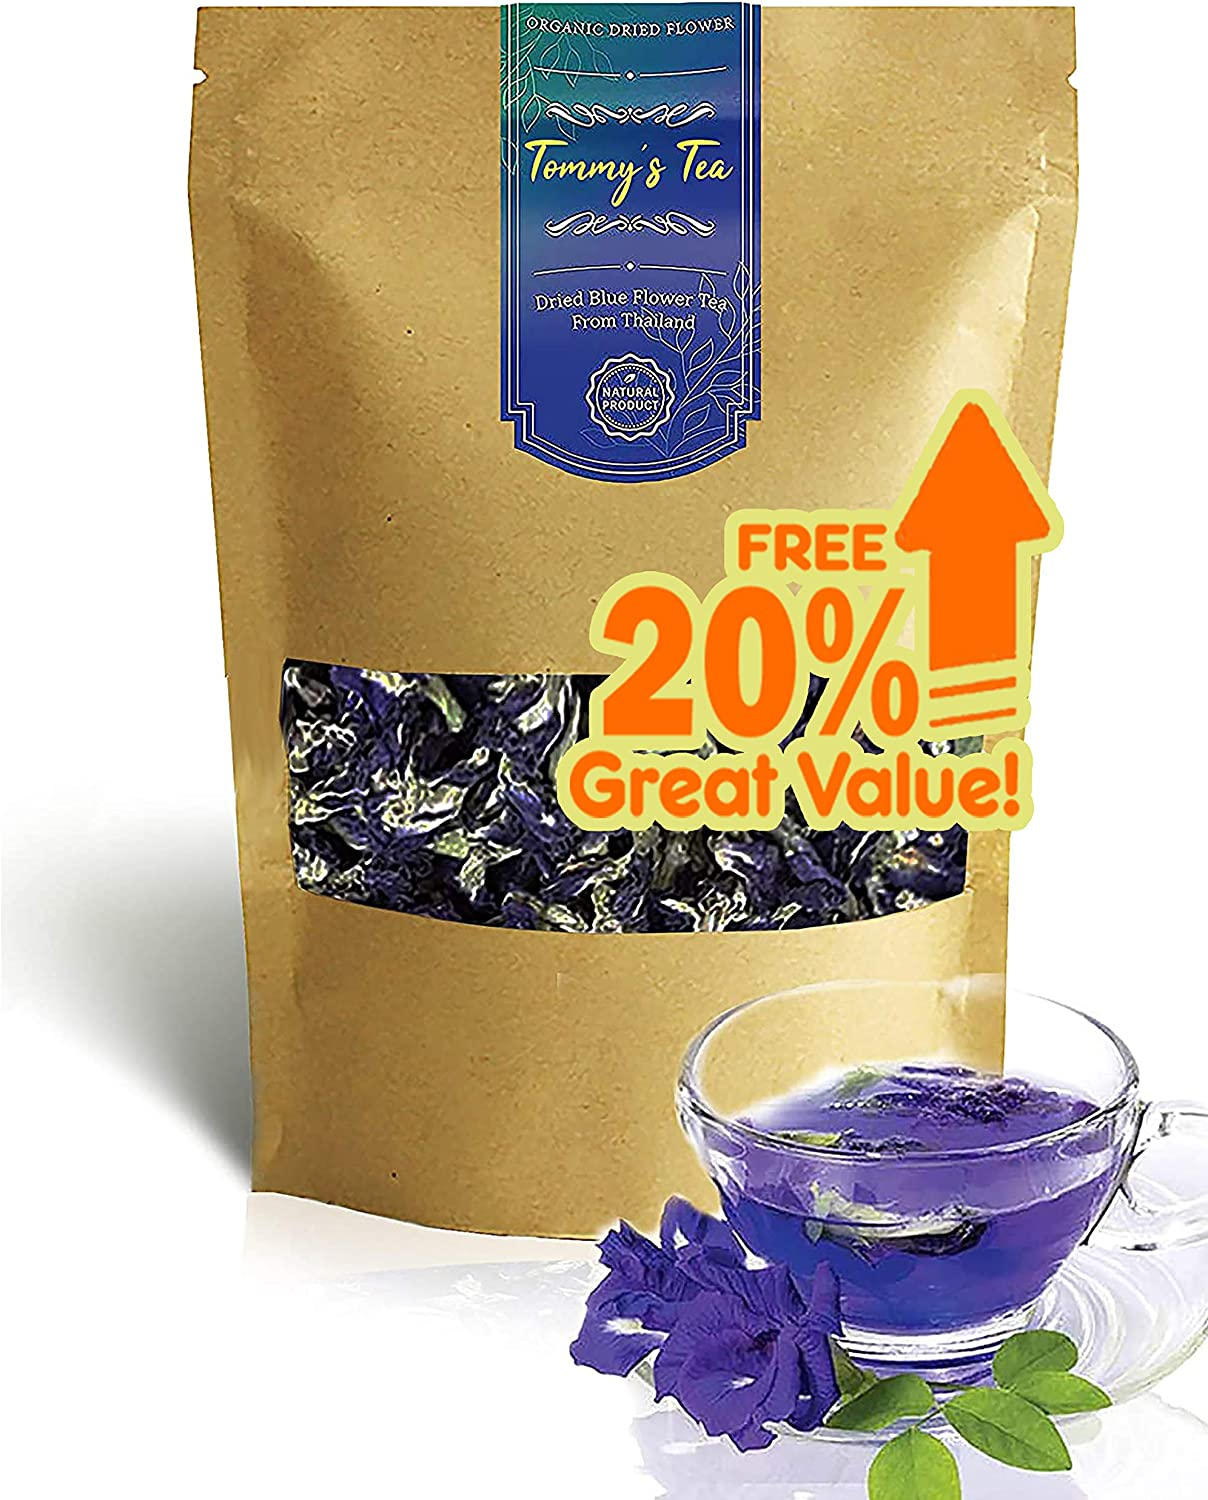 Tommy's Tea : Premium Thai Butterfly Pea Flower Blue Herbal Tea - 2.2 oz. (61 g) | Whole, All Natural, Vegan, Food Coloring, Dried for Food & Beverage